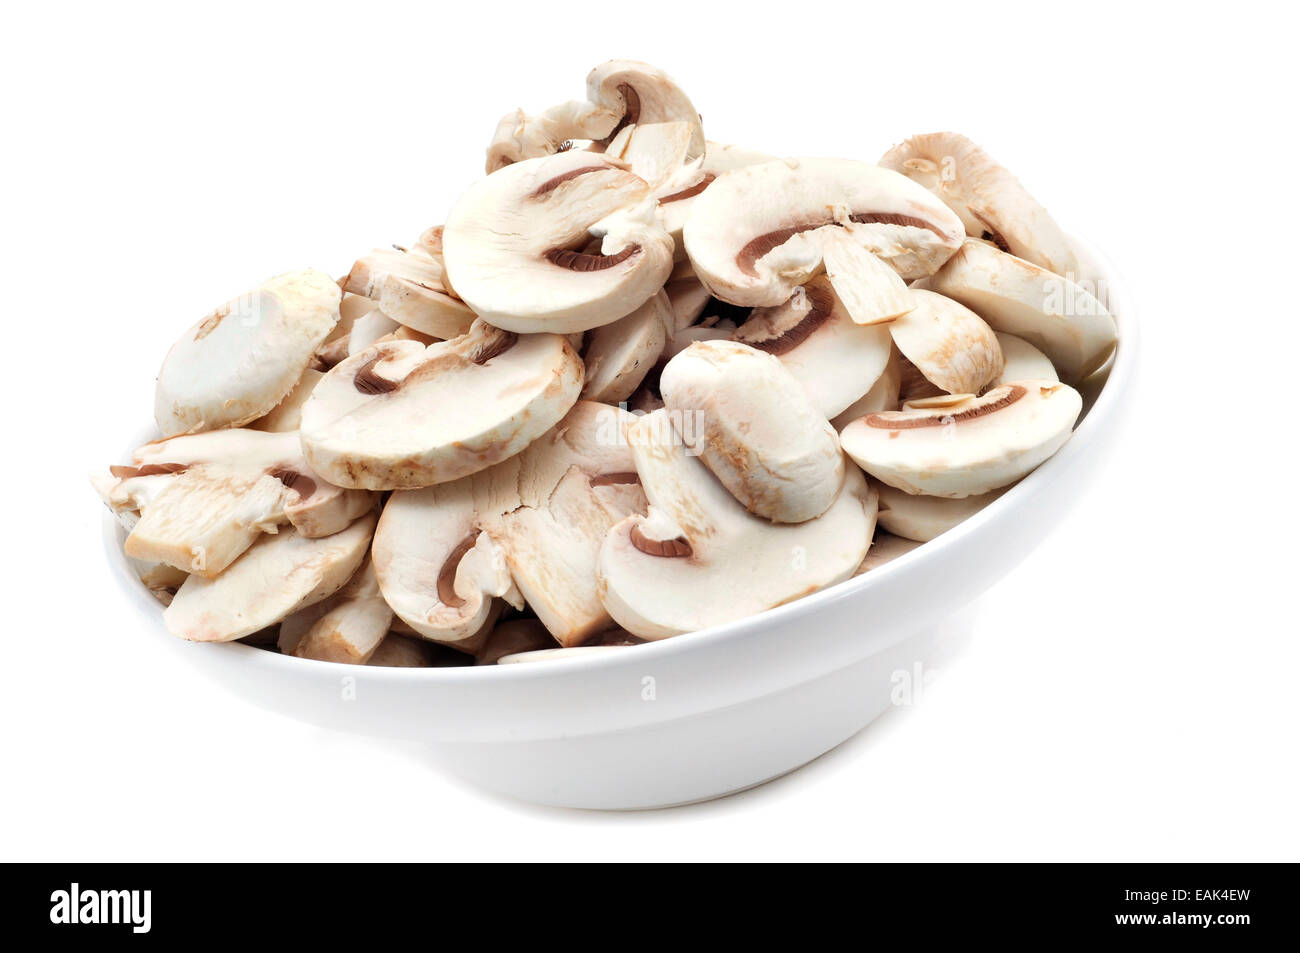 a bowl with sliced raw mushrooms on a white background - Stock Image